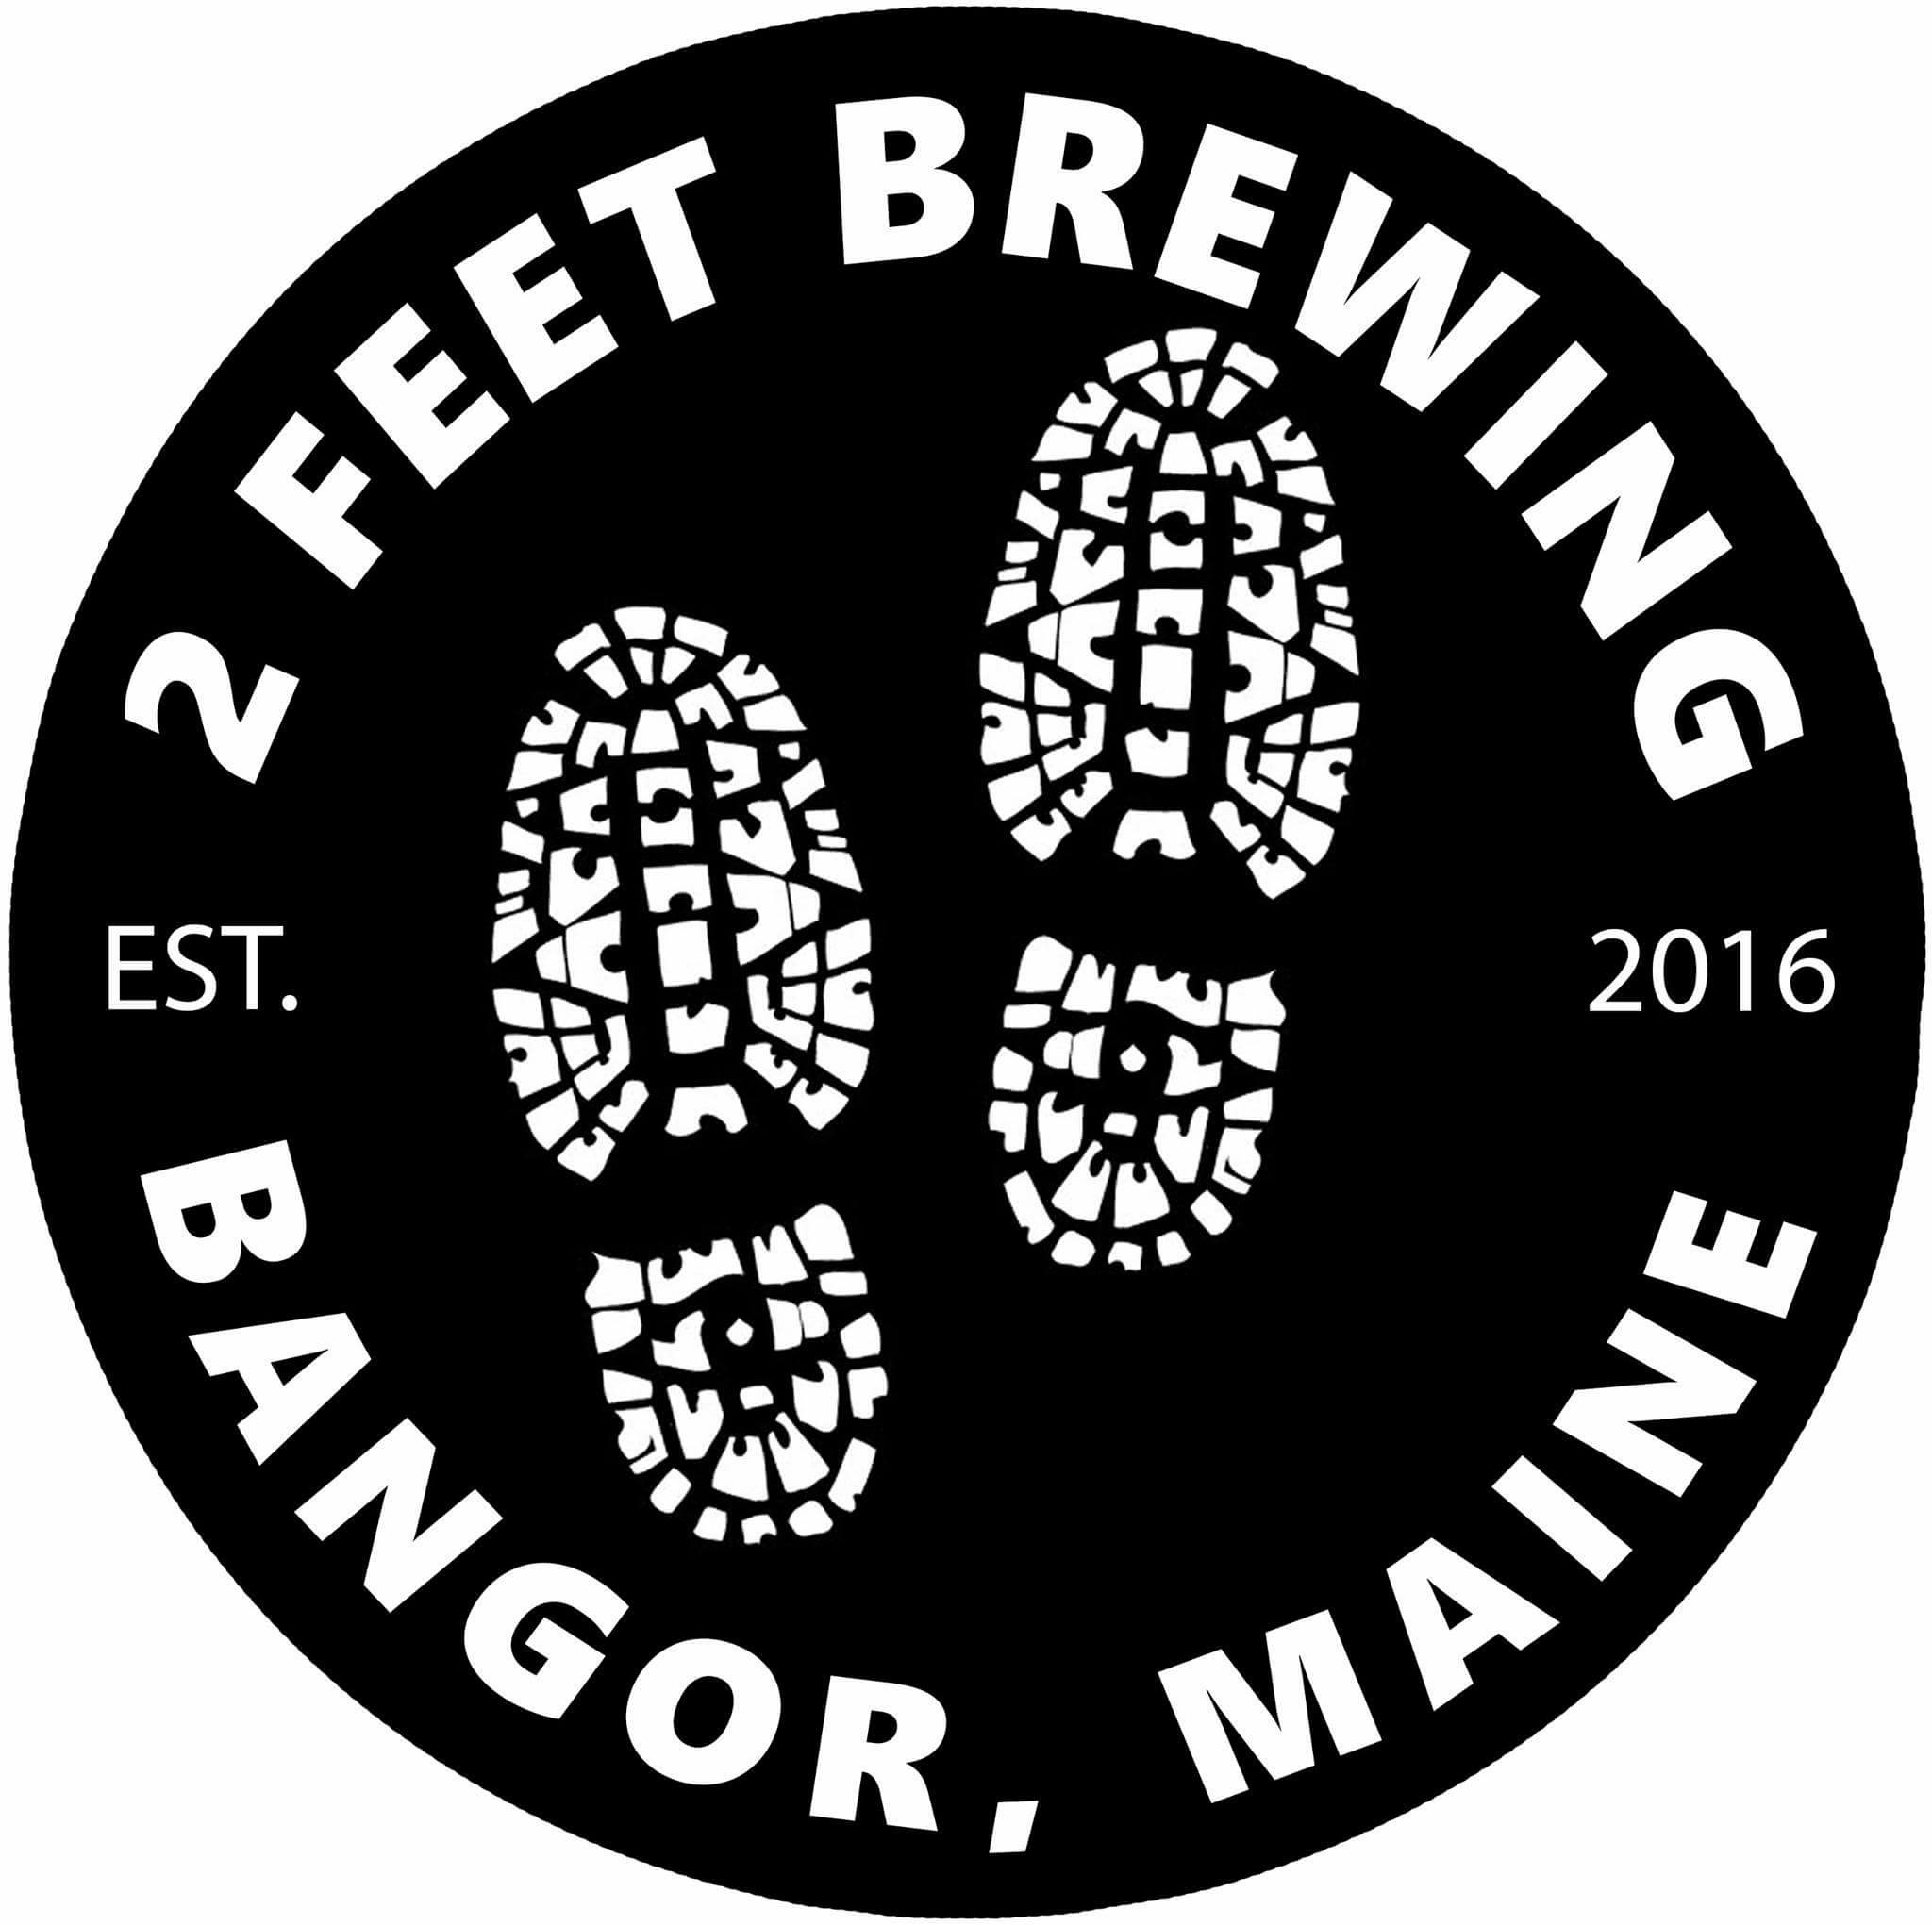 2 Feet Brewing